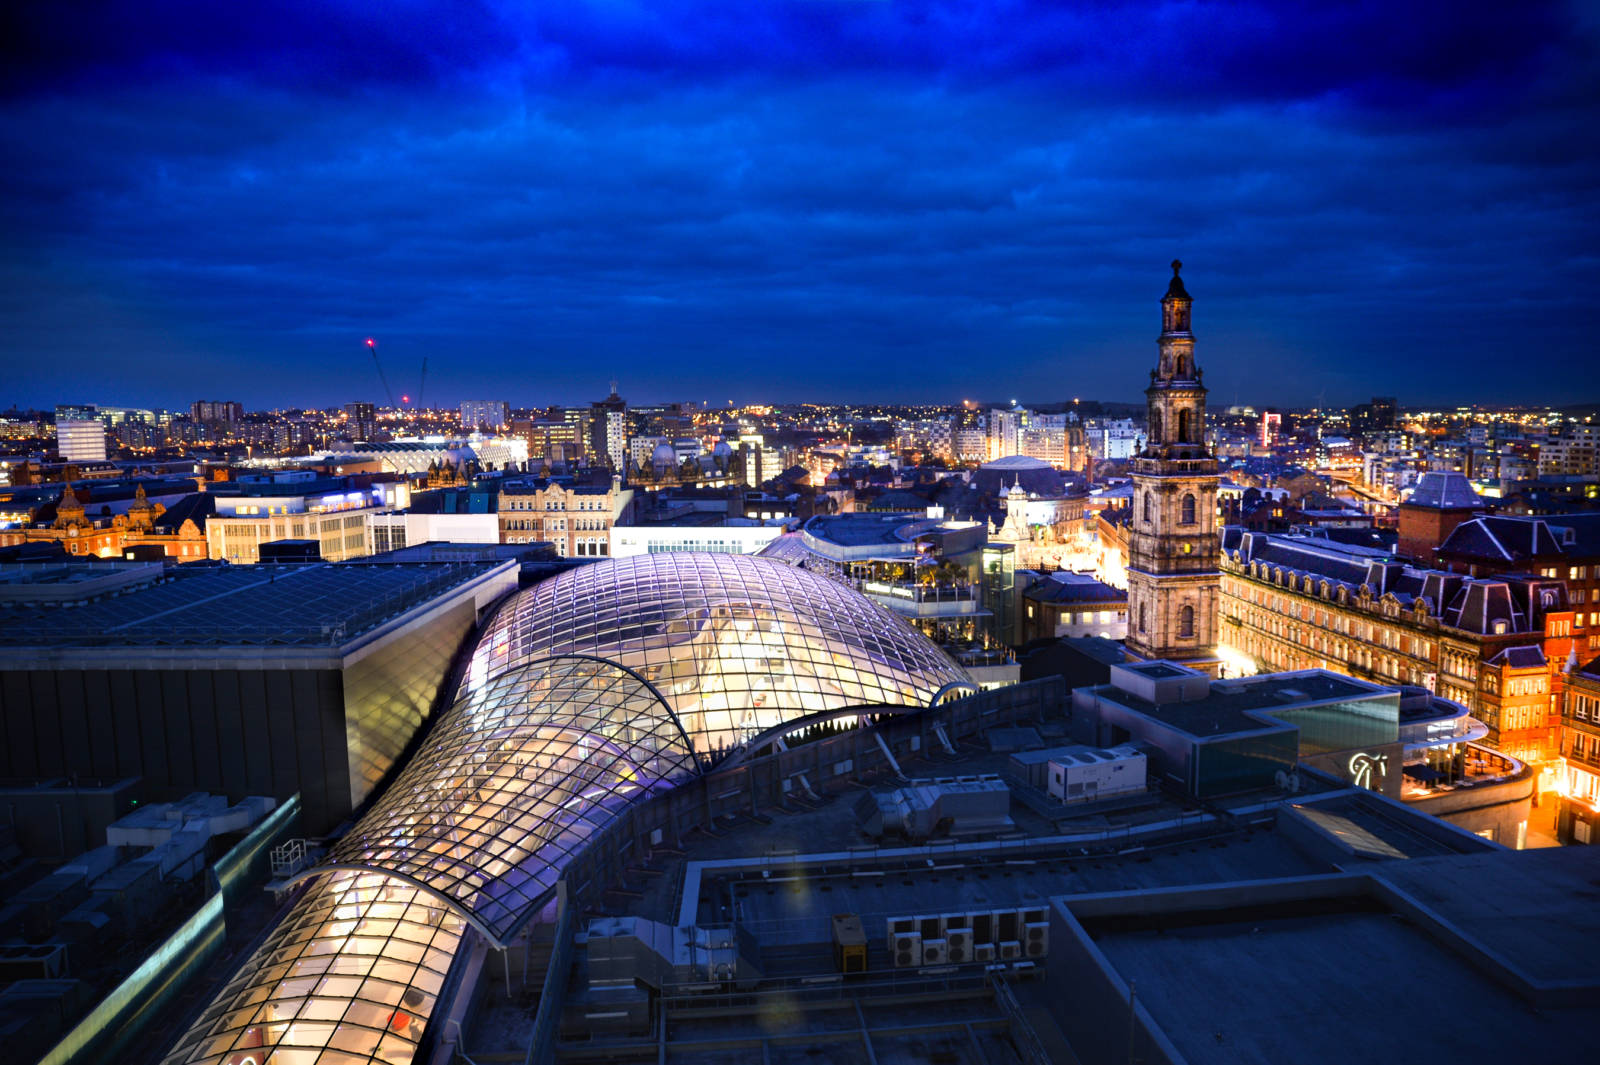 What Makes Conferencing in Leeds Such a Popular Choice?